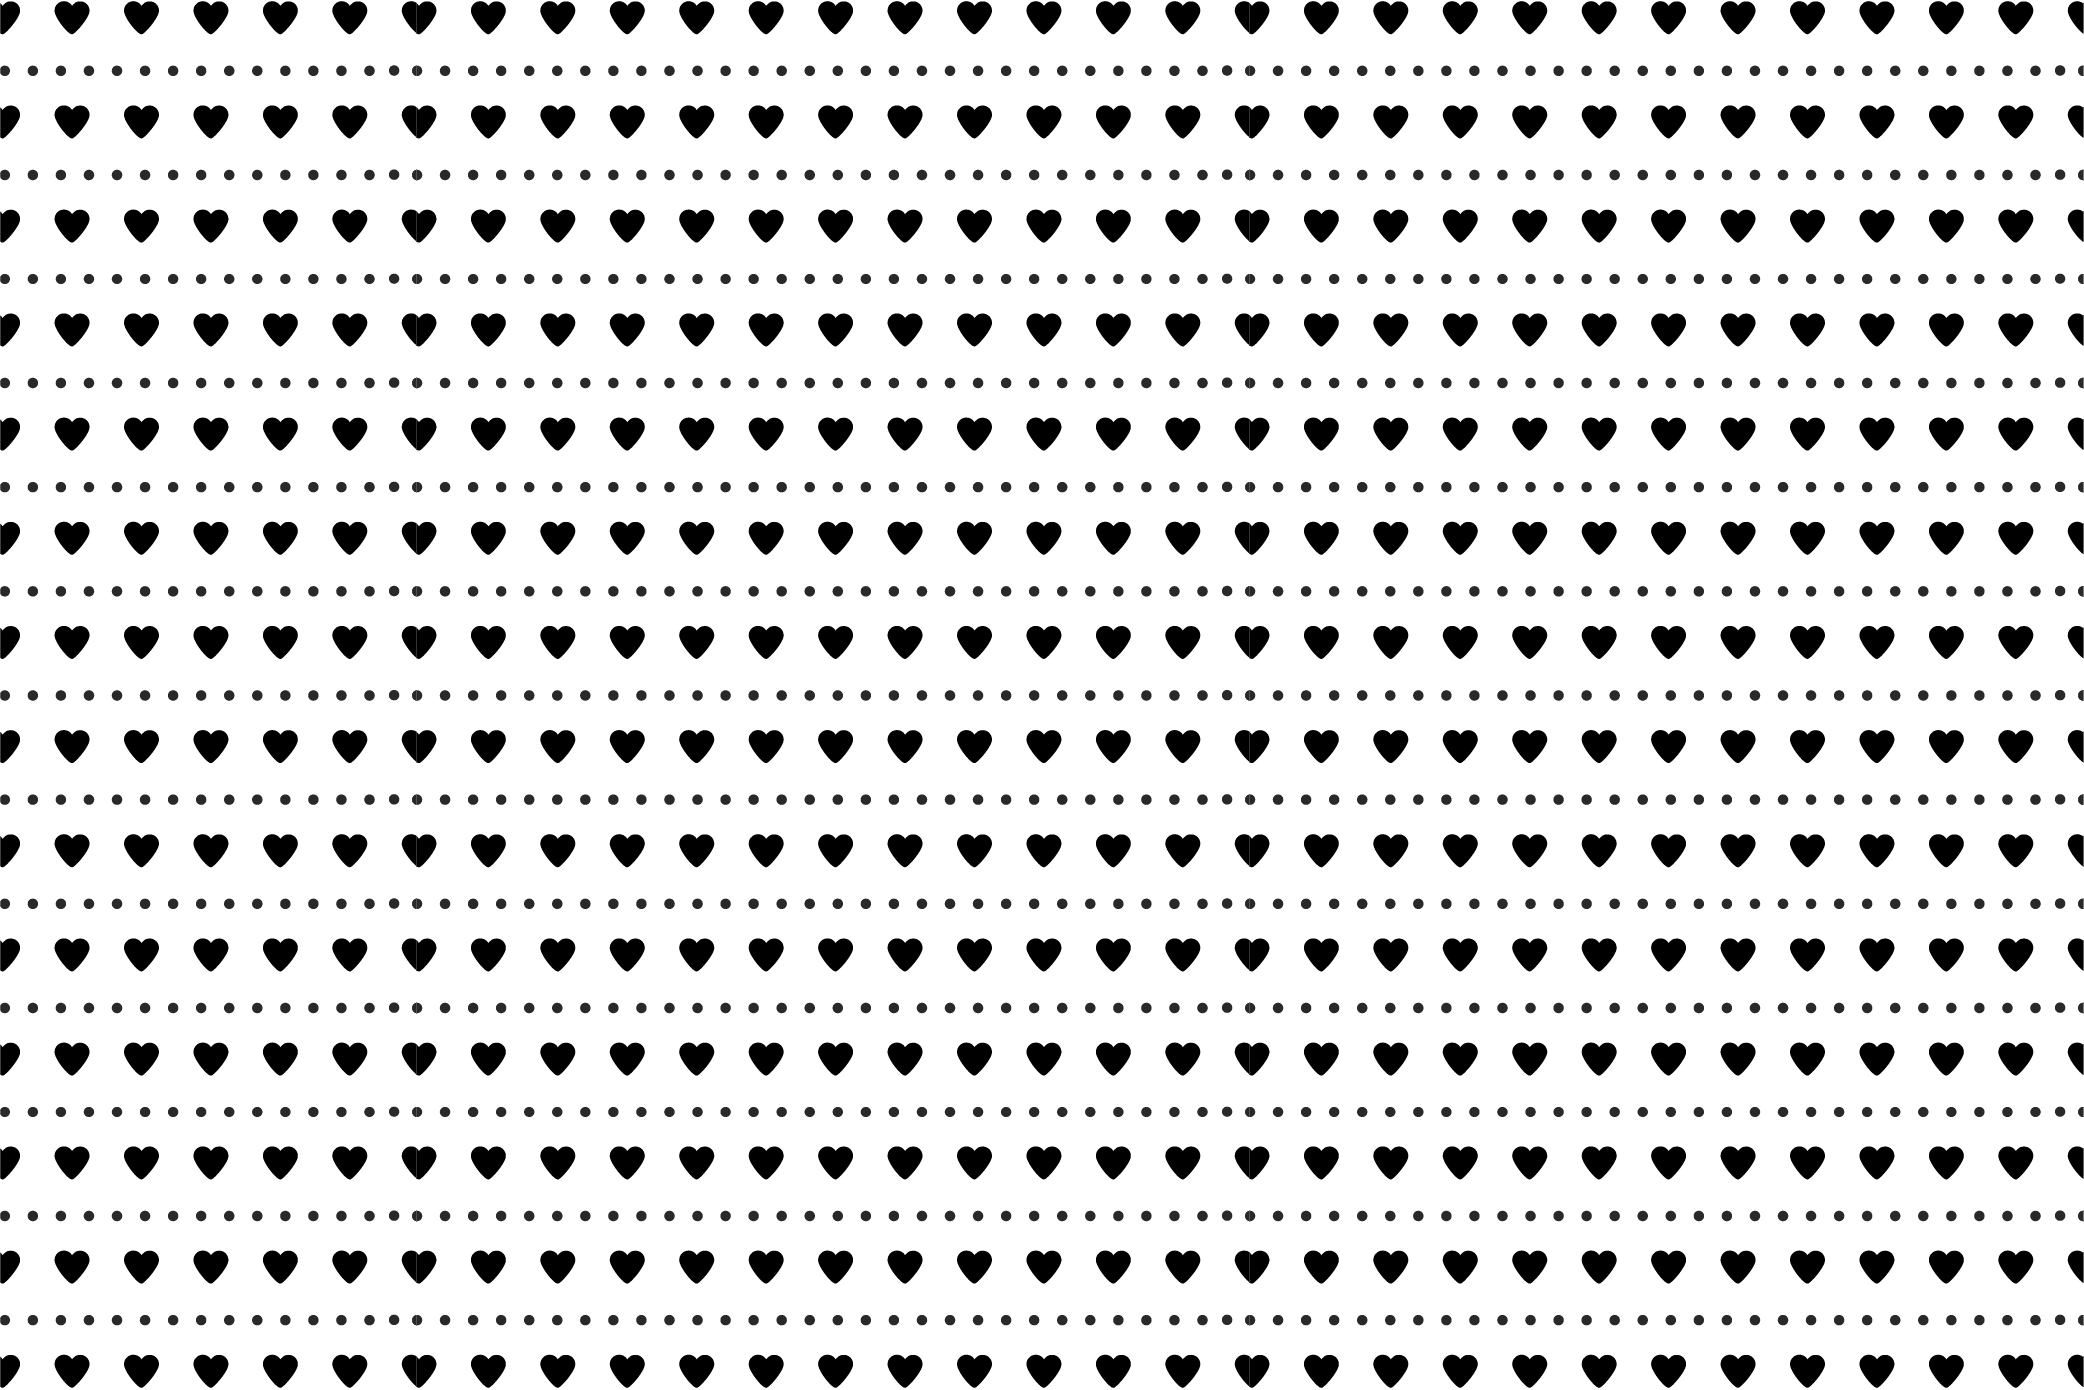 Black and white wedding digital paper. SVG, Ai, EPS 10, JPEG example image 14